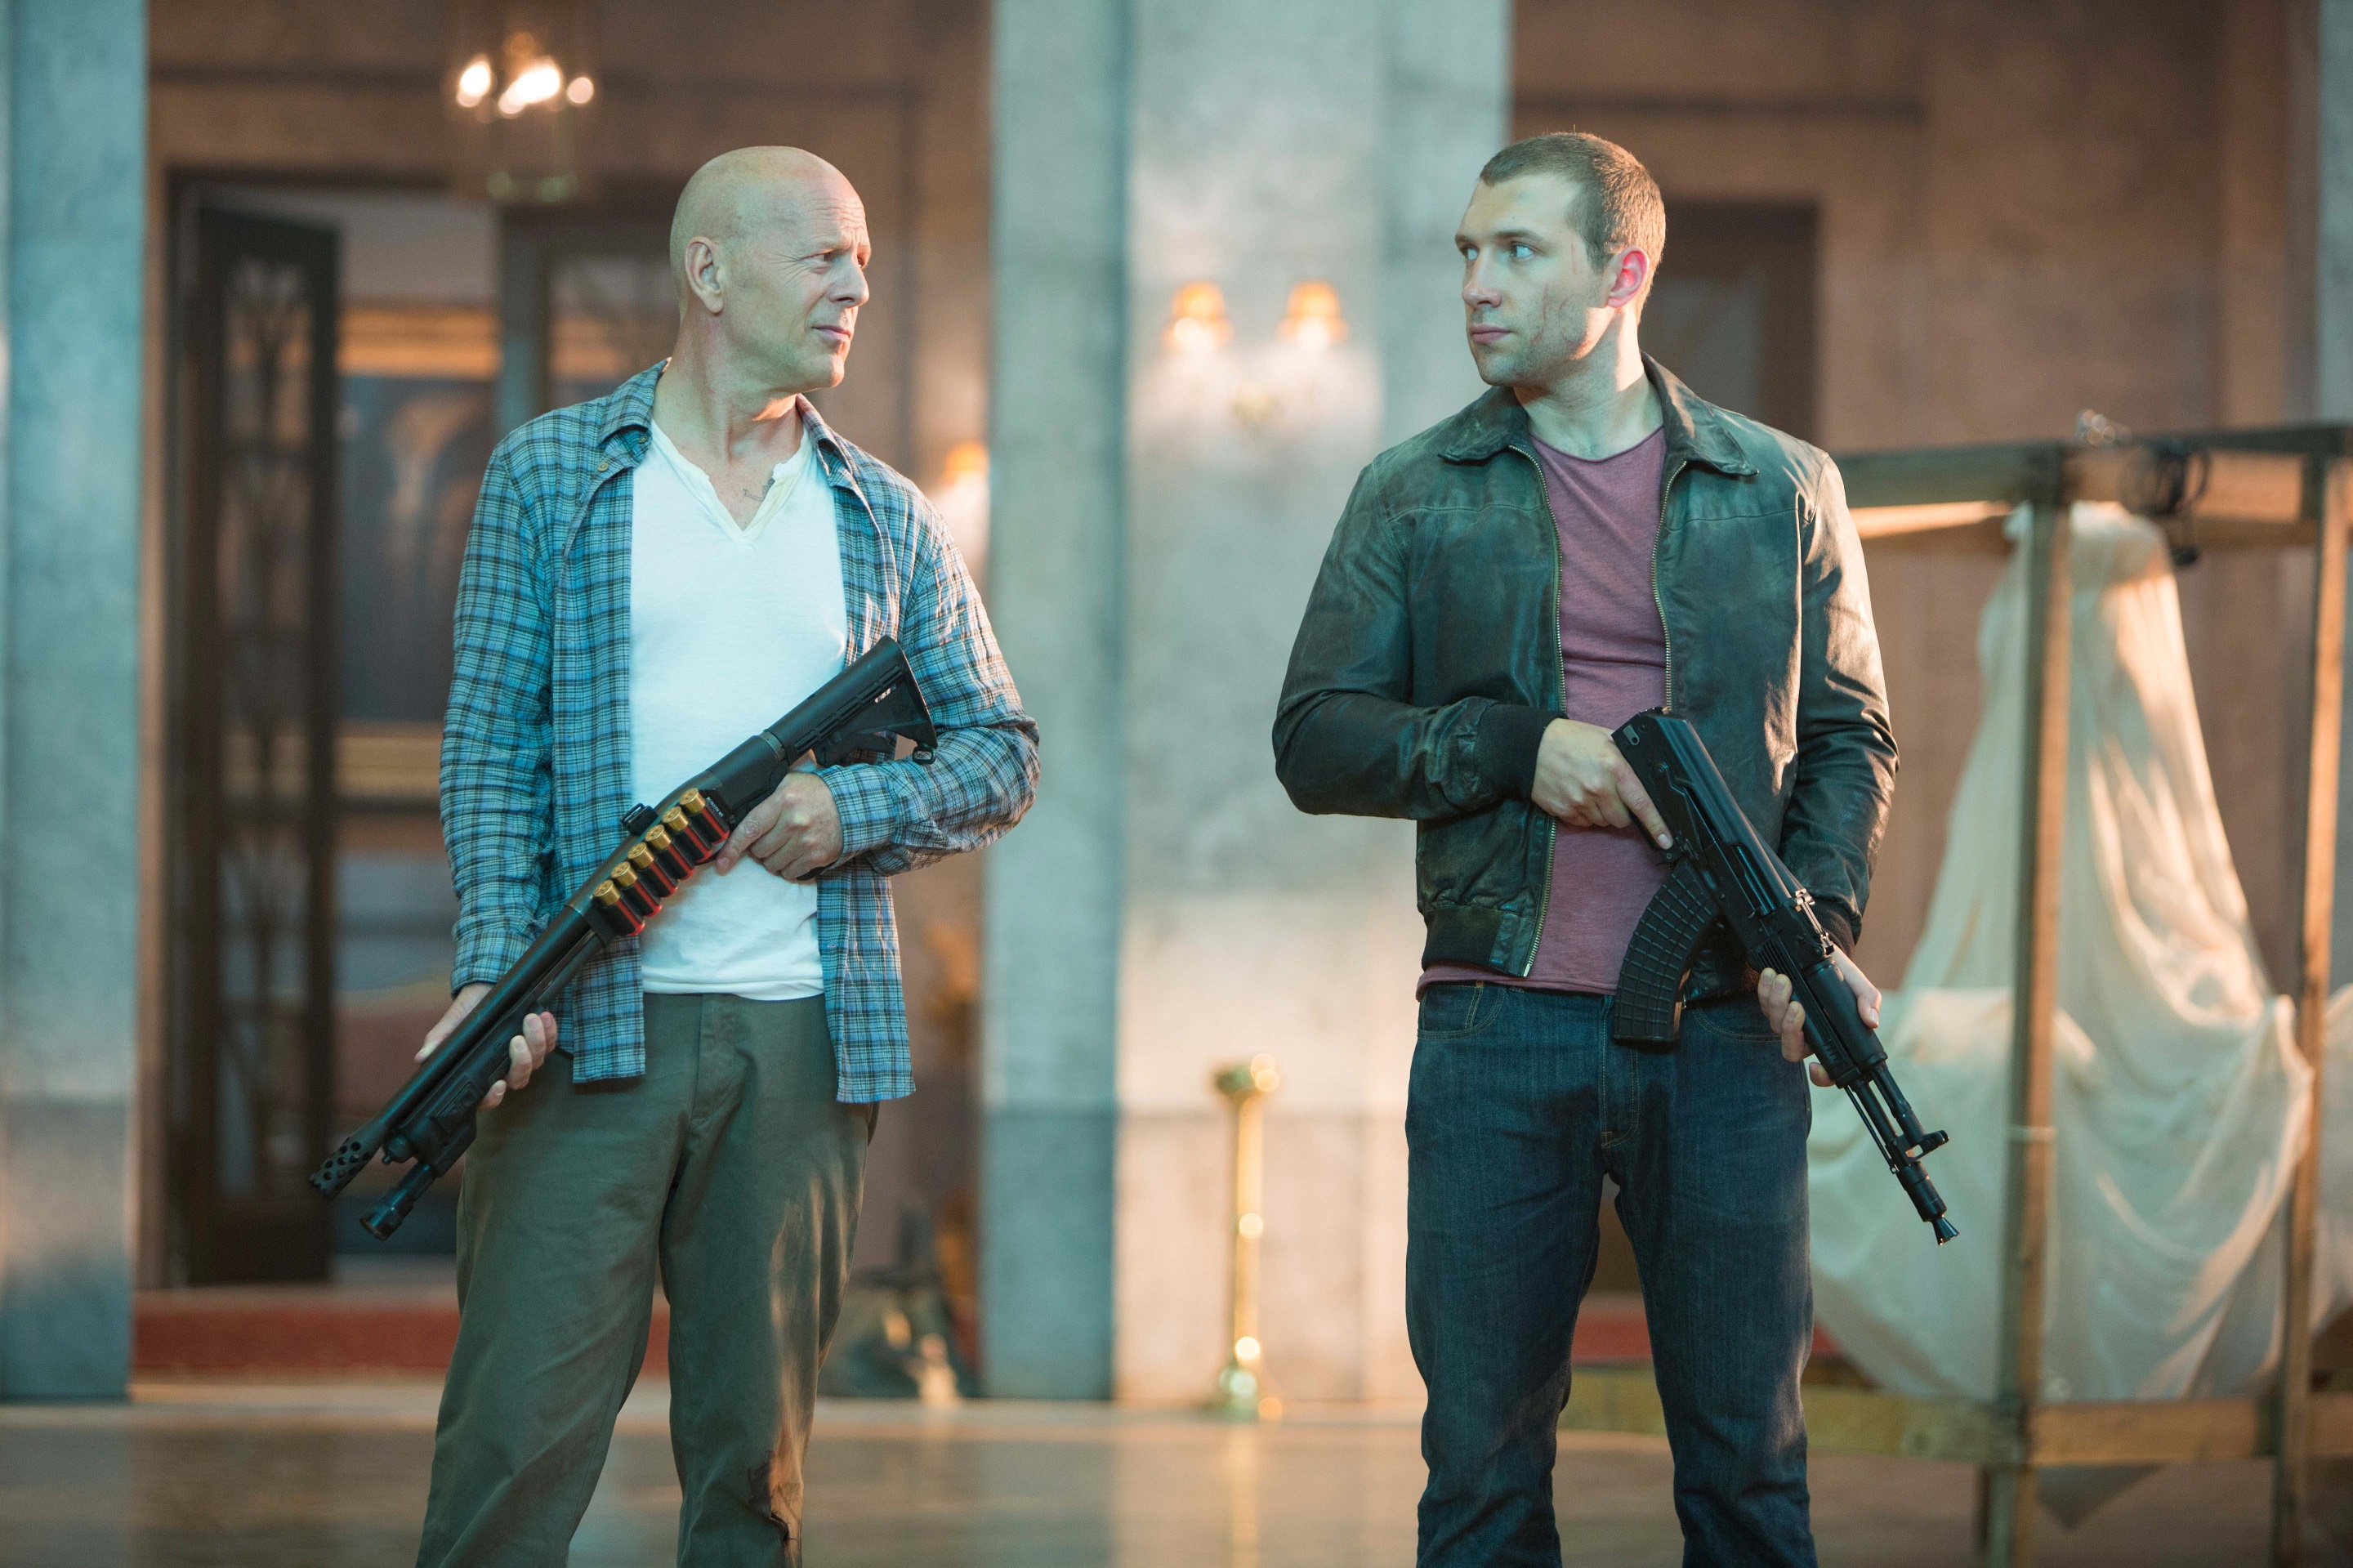 A GOOD DAY TO DIE HARD John McClane (Bruce Willis) and his son Jack (Jai Courtney) unexpectedly join forces to stop a nuclear weapons heist. Photo Credit: Frank Masi, SMPSP TM & © 2013 Twentieth Century Fox Film Corporation.  All Rights Reserved.  Not for sale or duplication.